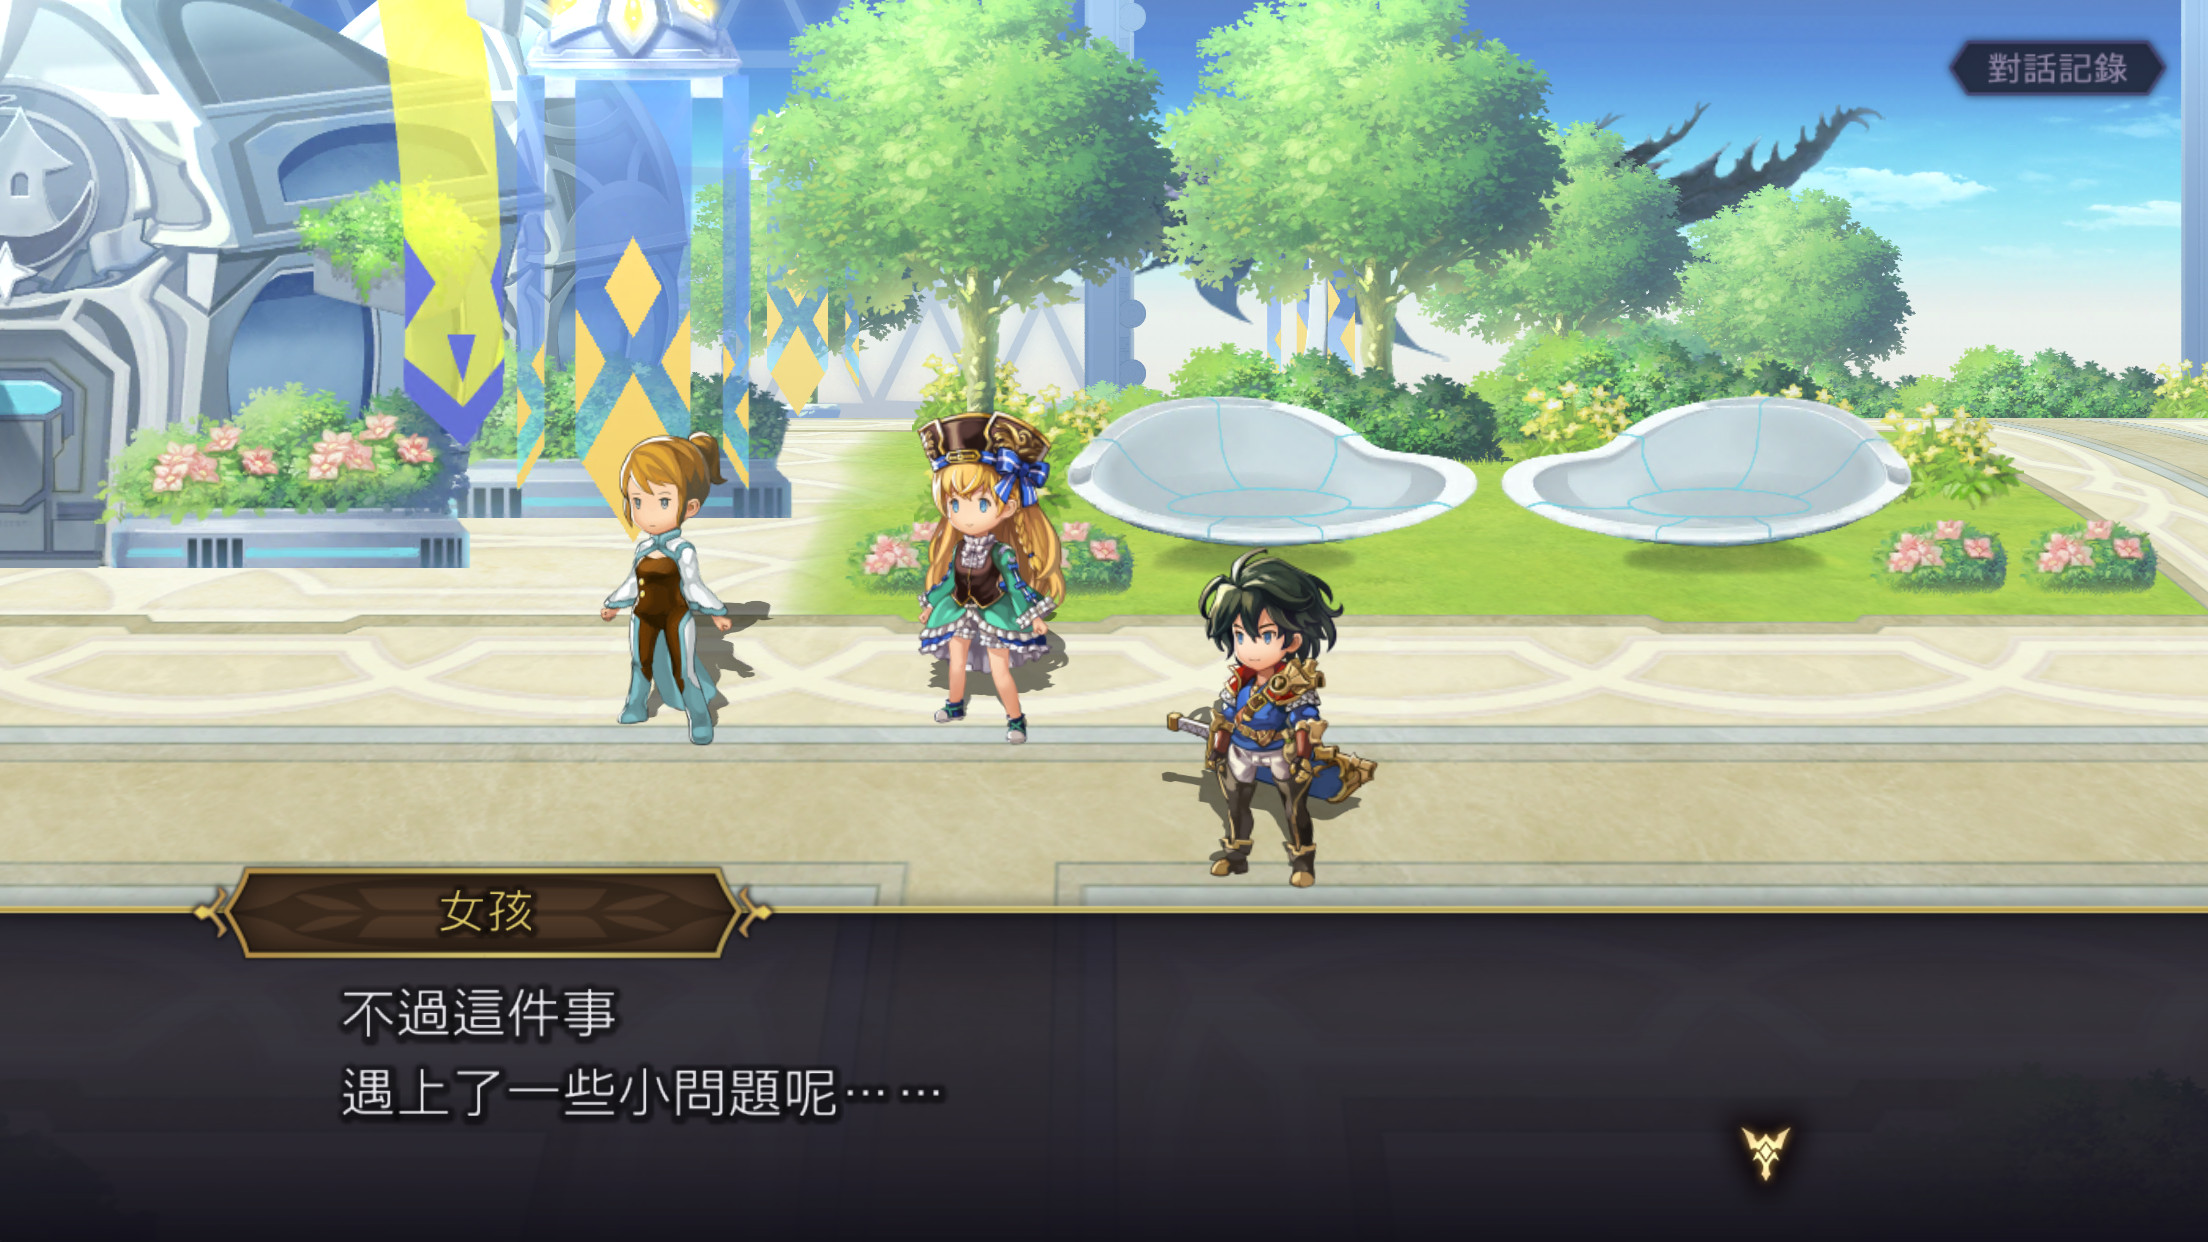 ▲▼《Another Eden:穿越時空的貓》。圖/翻攝自《Another Eden:穿越時空的貓》遊戲畫面。)